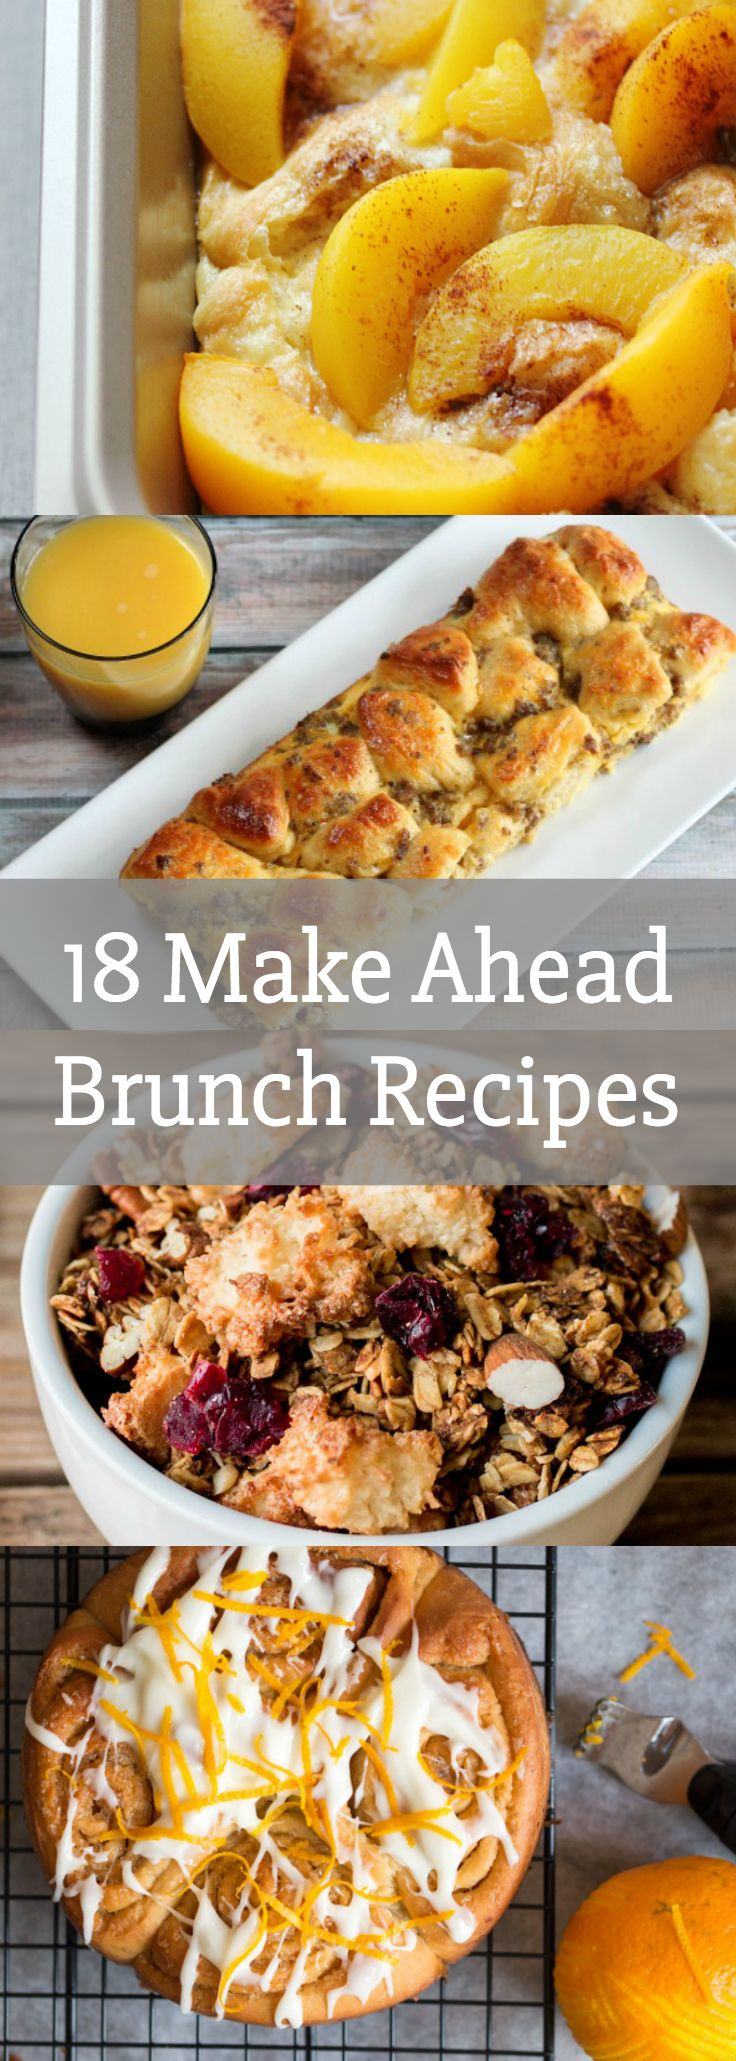 Easy portable brunch recipes